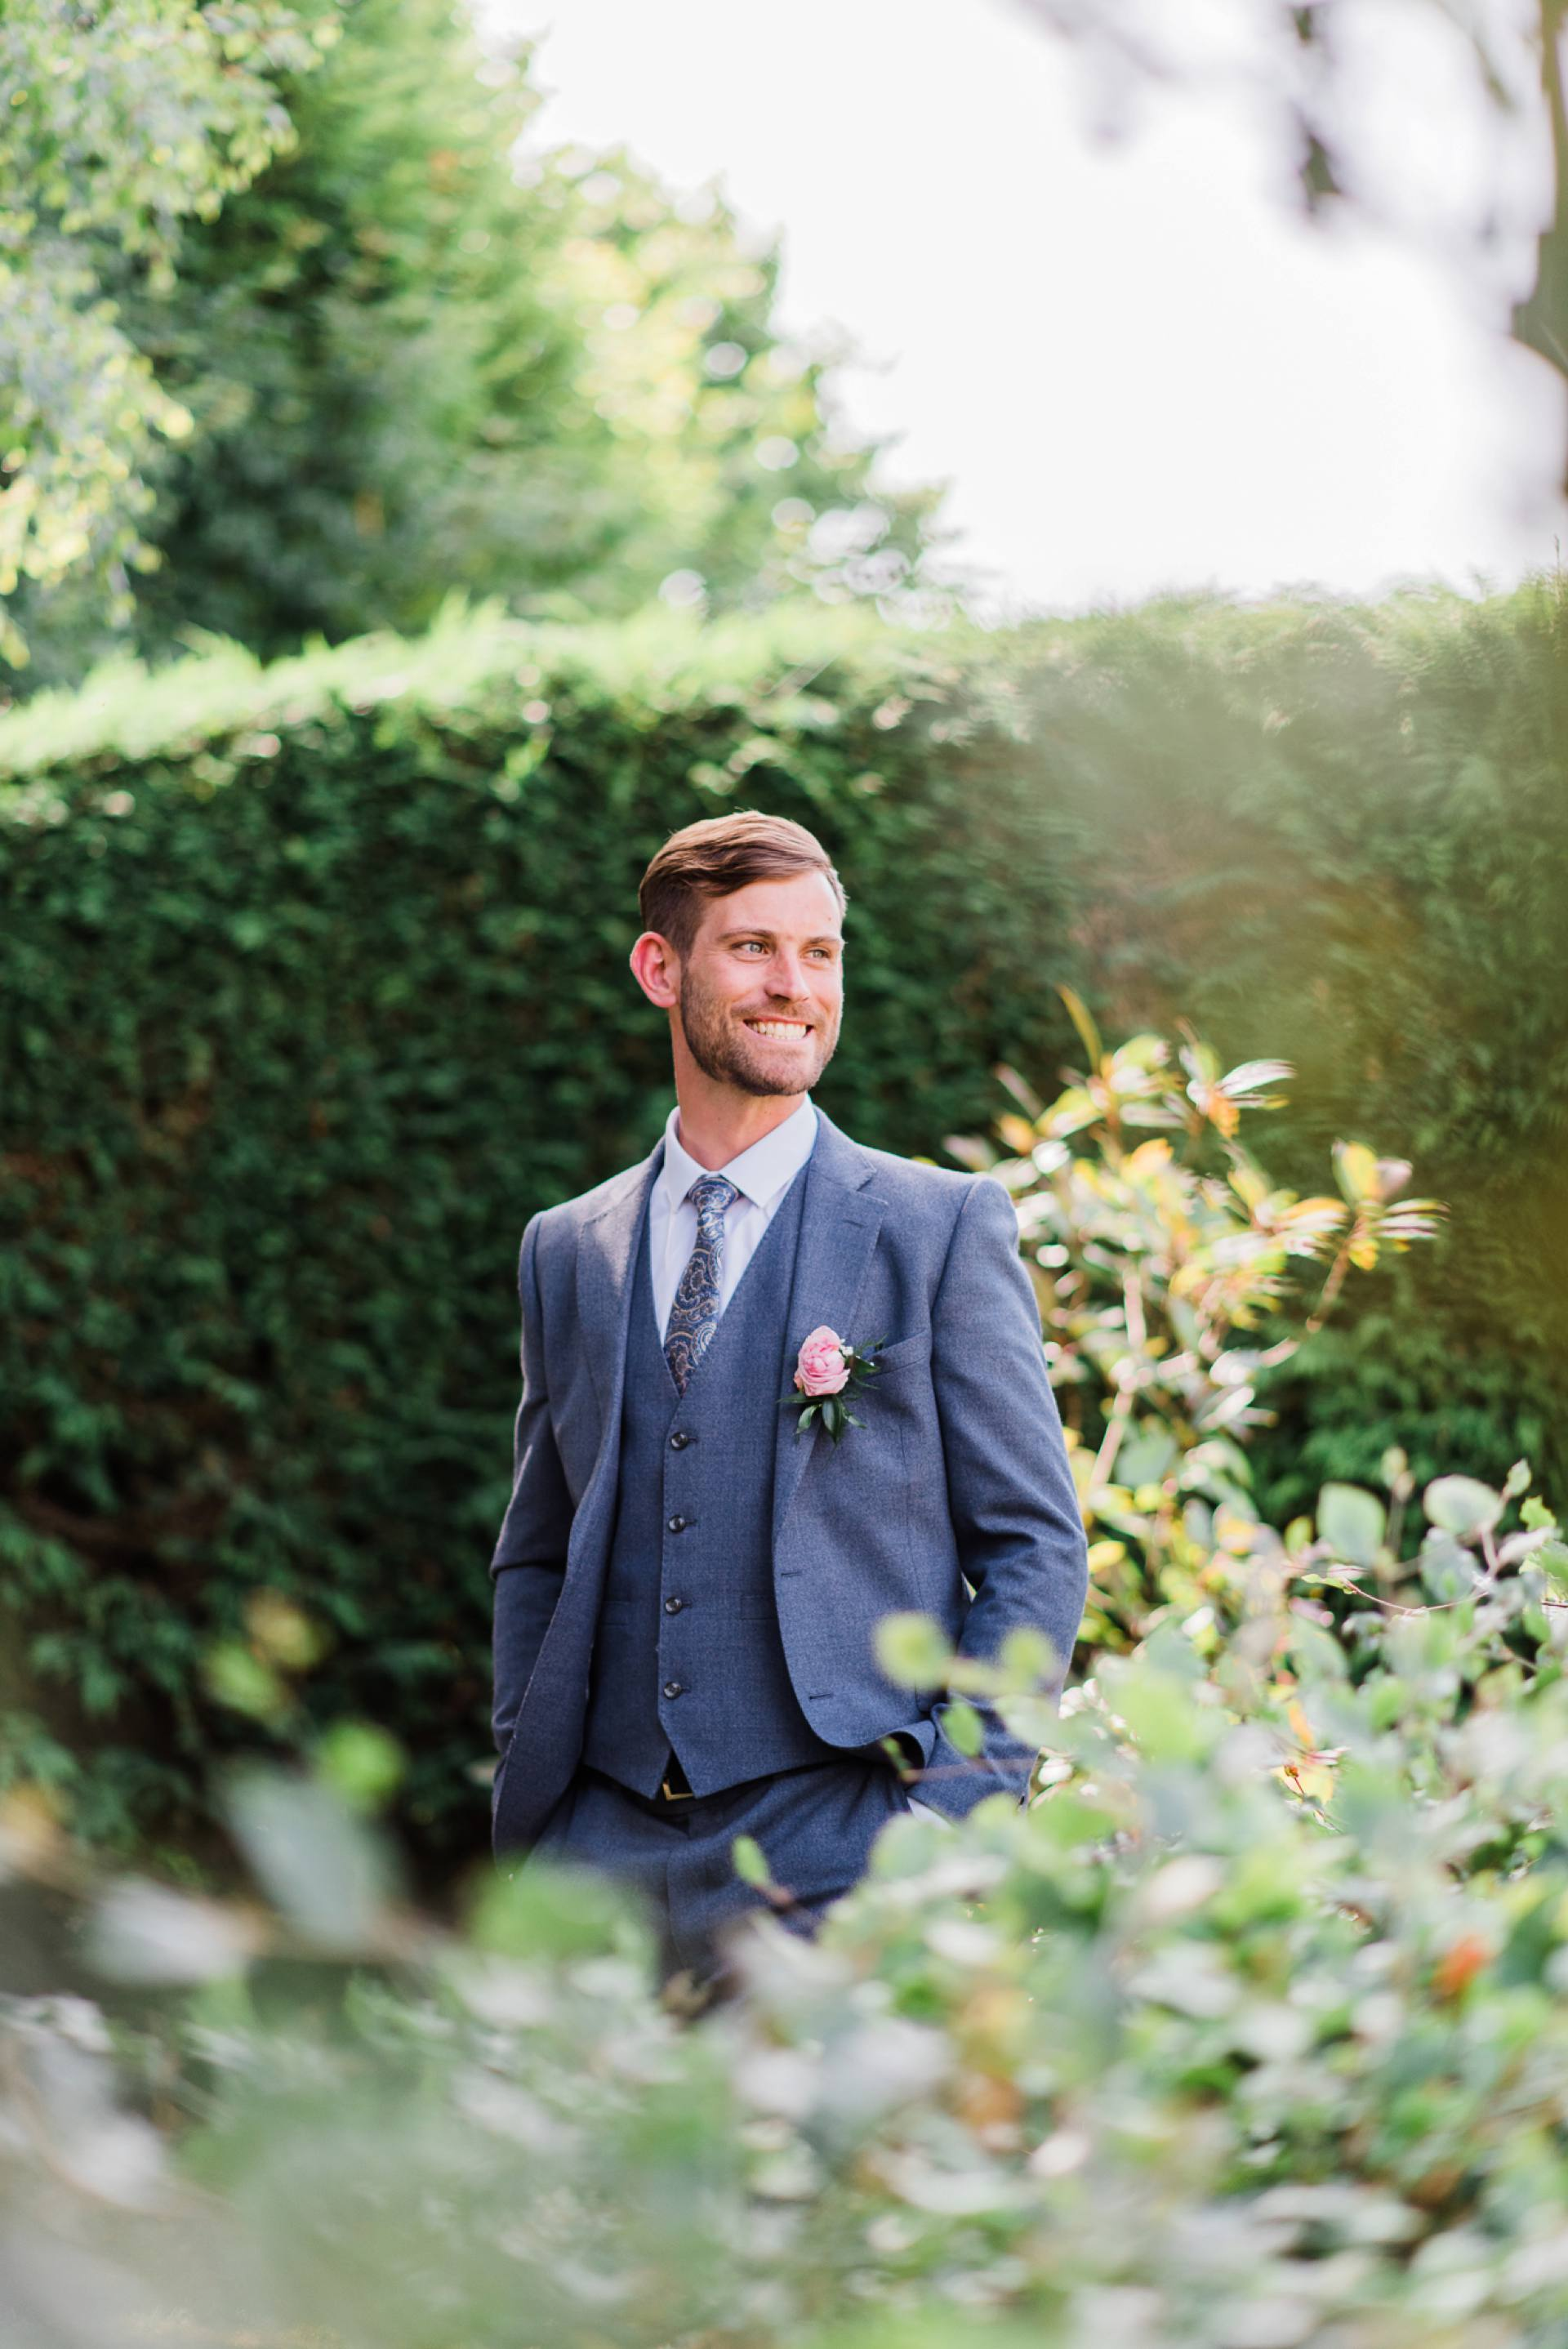 Groom laughing in the sun